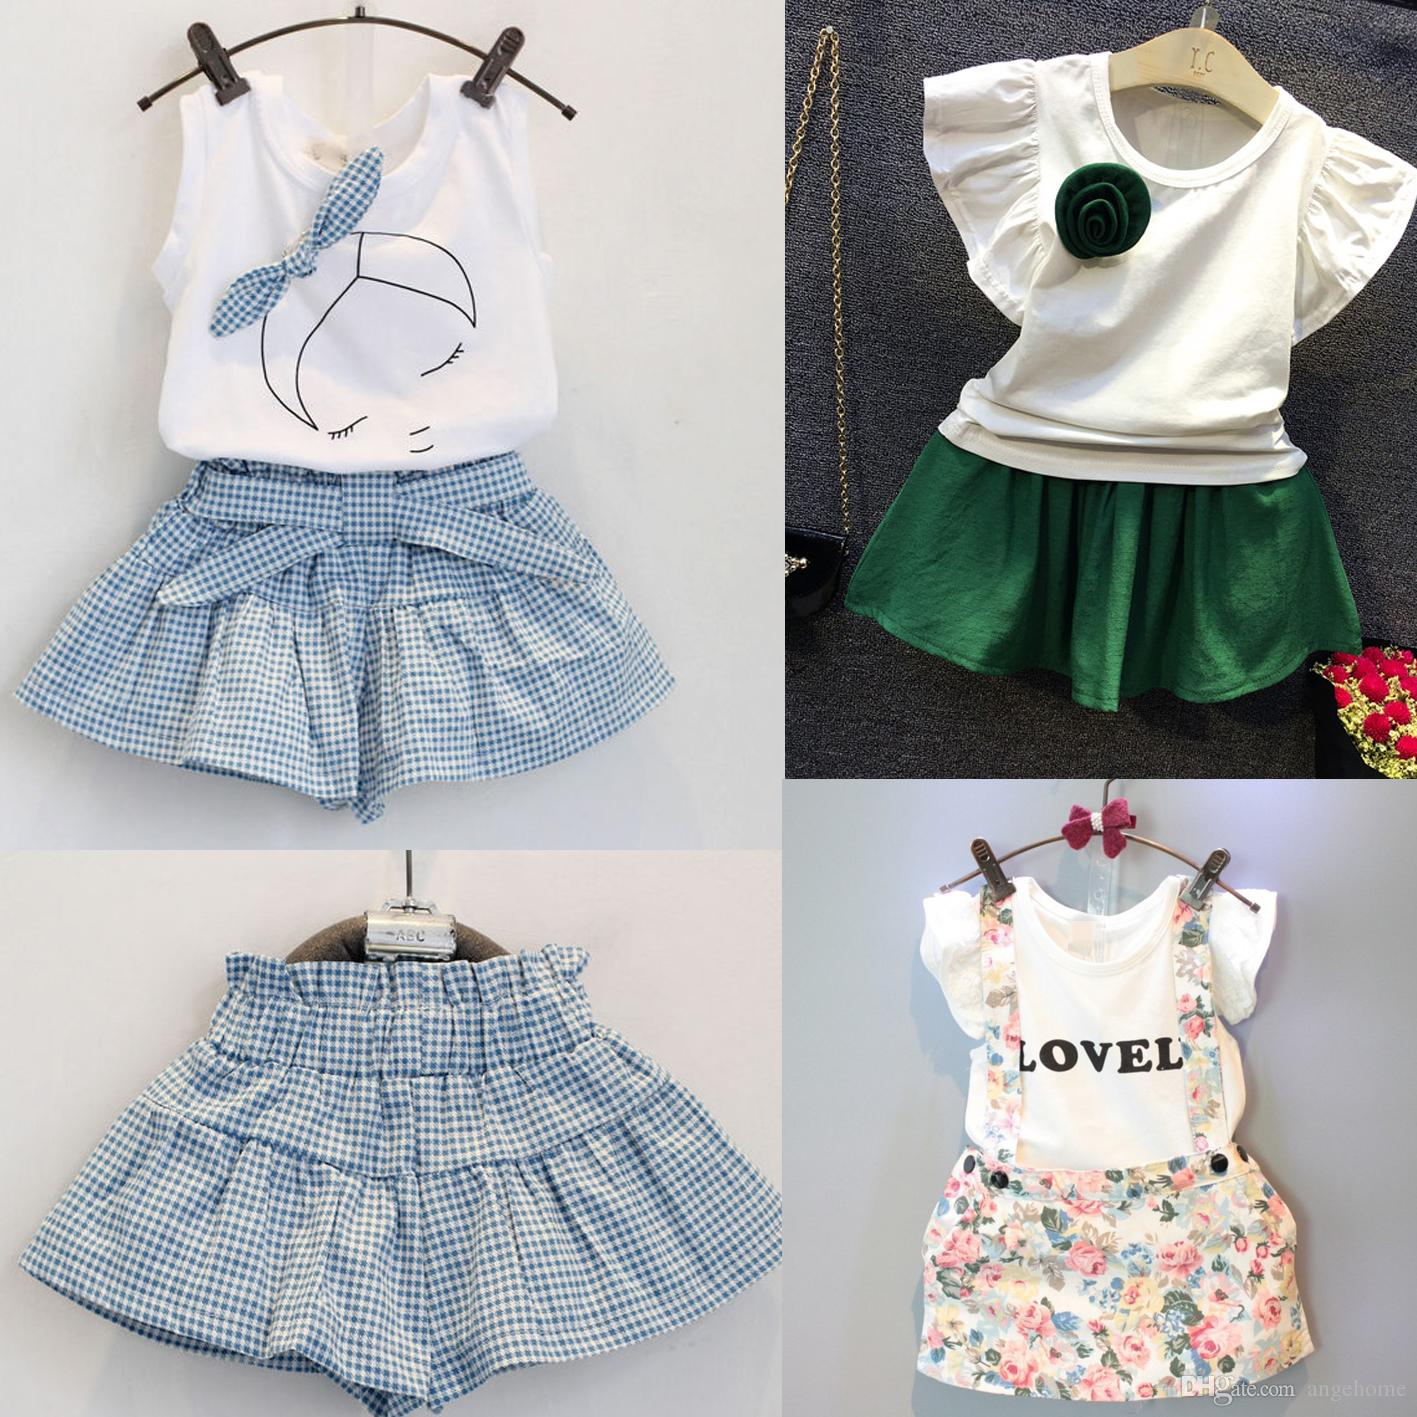 2pcs Lace Flower Baby Clothing Set Newborn Girls Kids Rose Lace Princess Tops Evident Effect Girls' Clothing (newborn-5t)